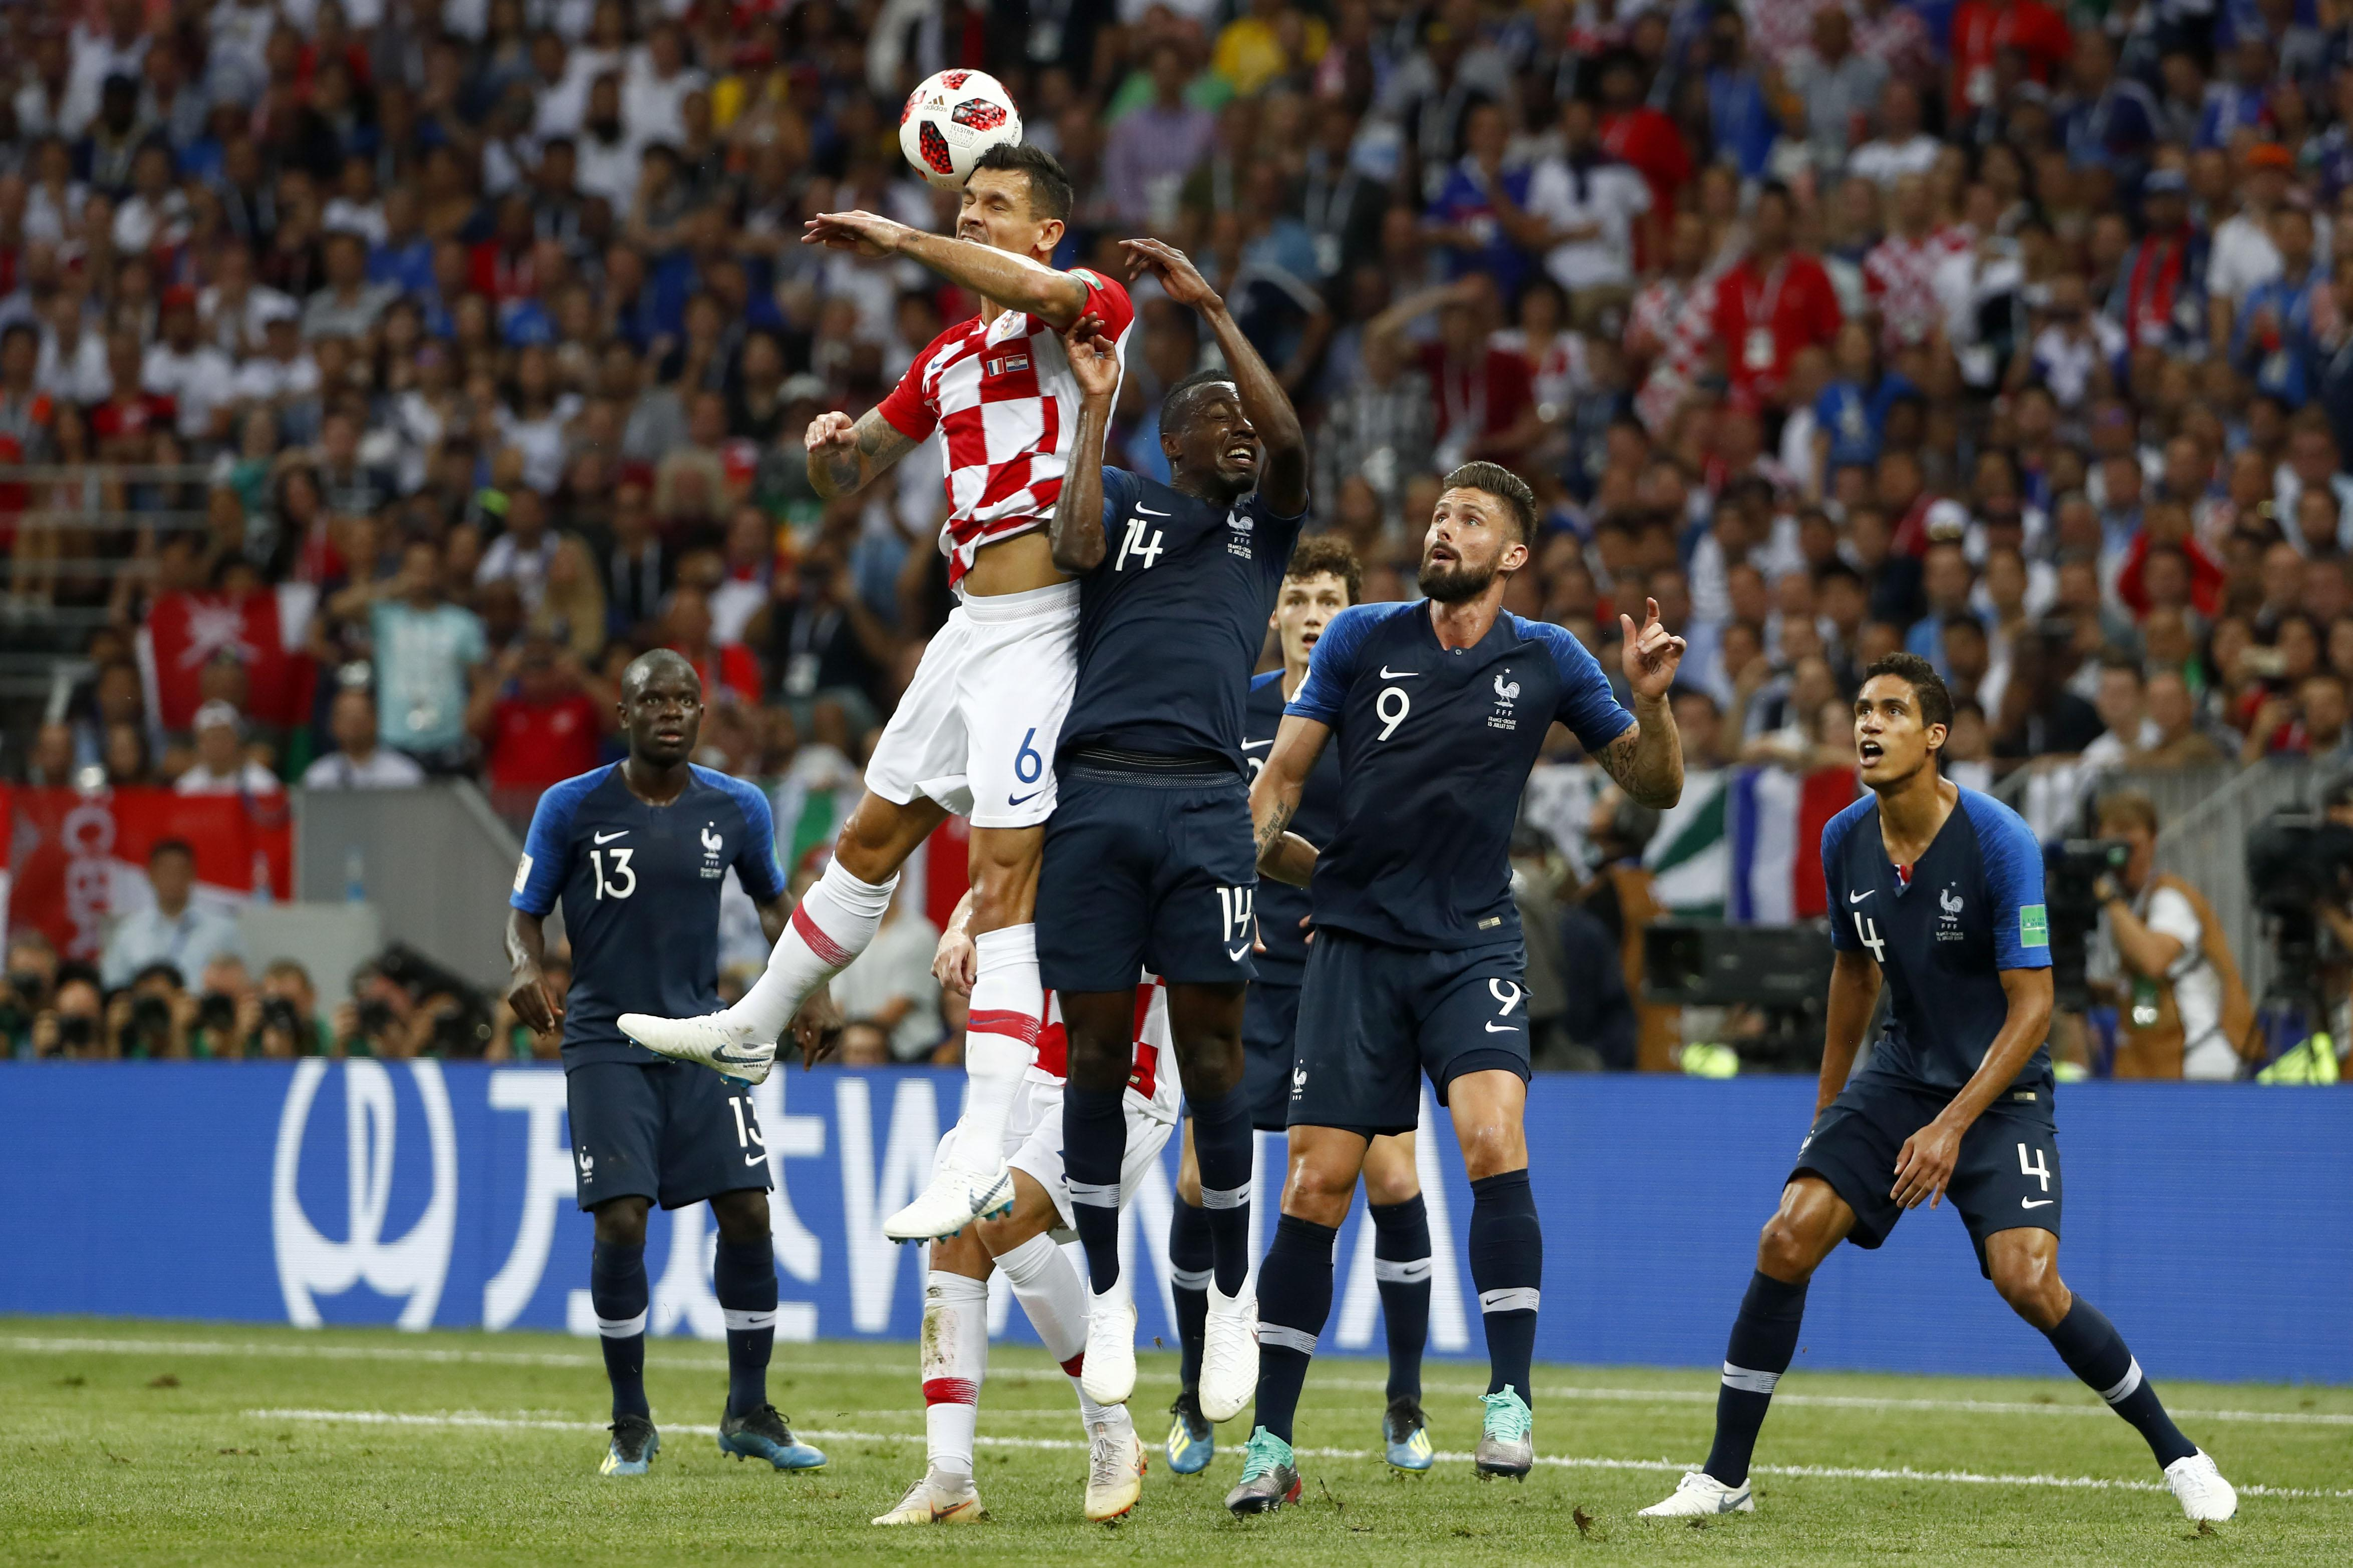 France beats Croatia to win 2nd World Cup